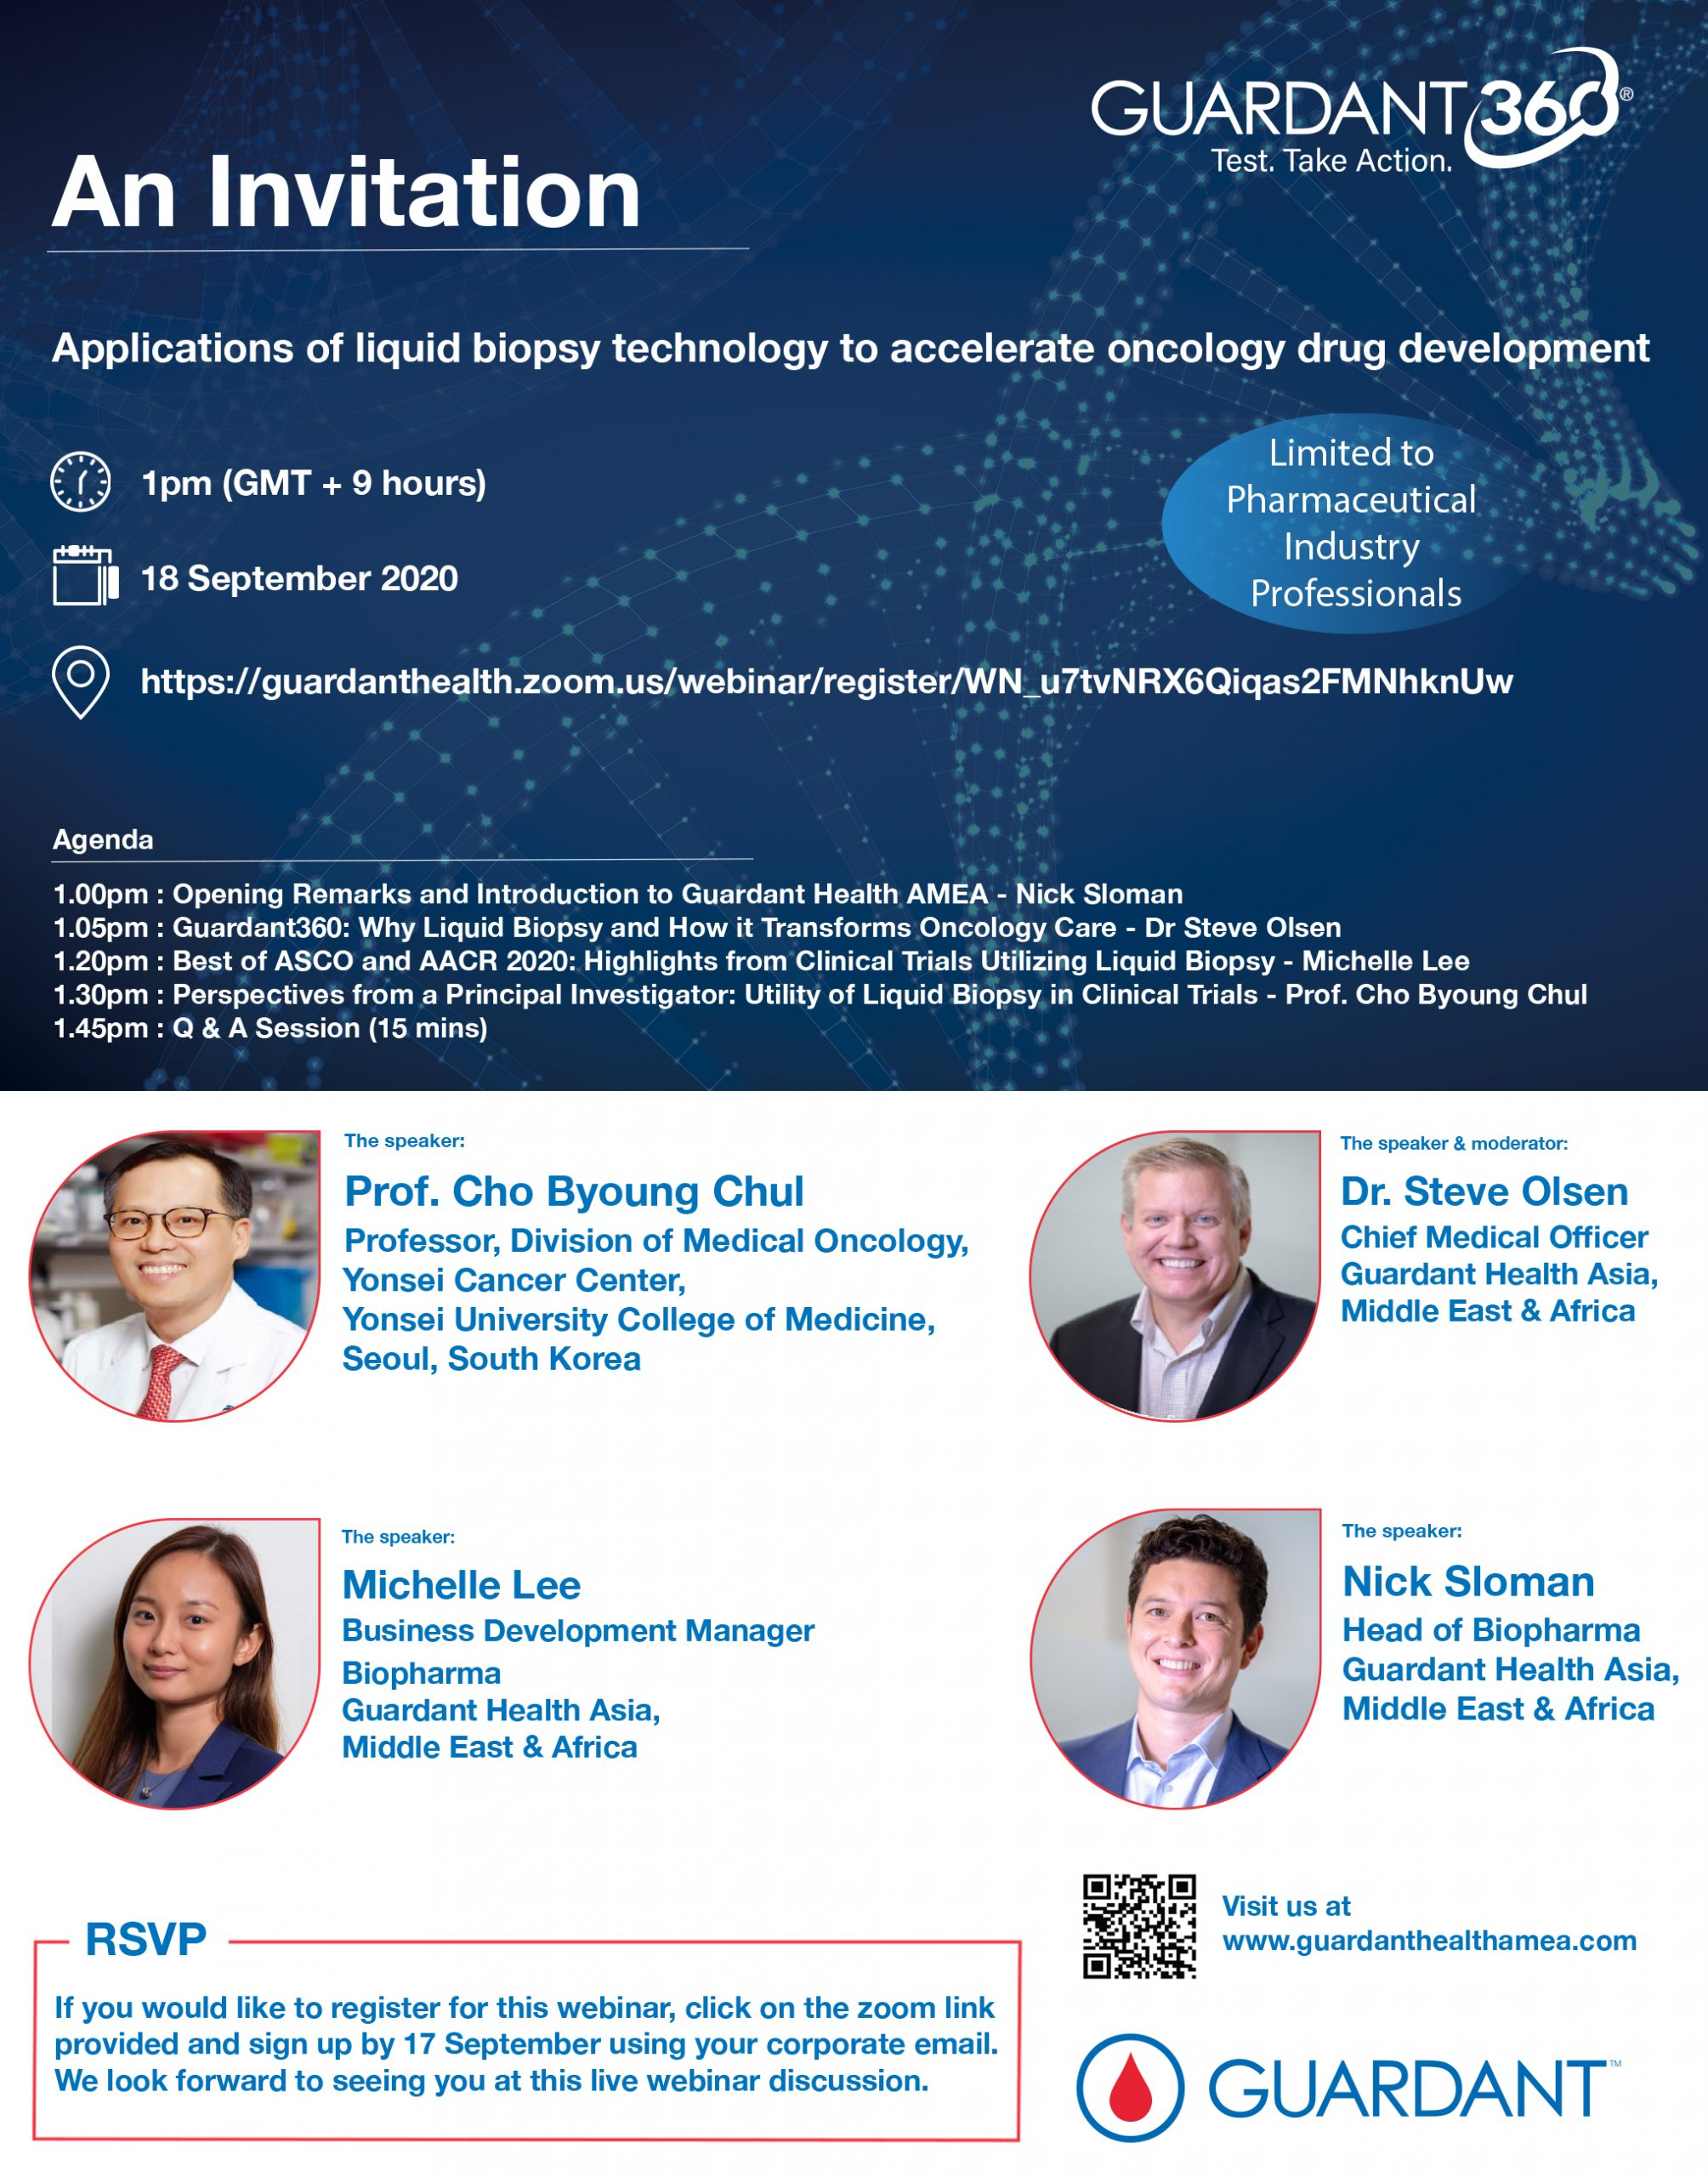 "Join us on 18 September at 1pm (GMT+9hrs) for a Webinar Discussion on ""Applications of liquid biopsy technology to accelerate oncology drug development"""